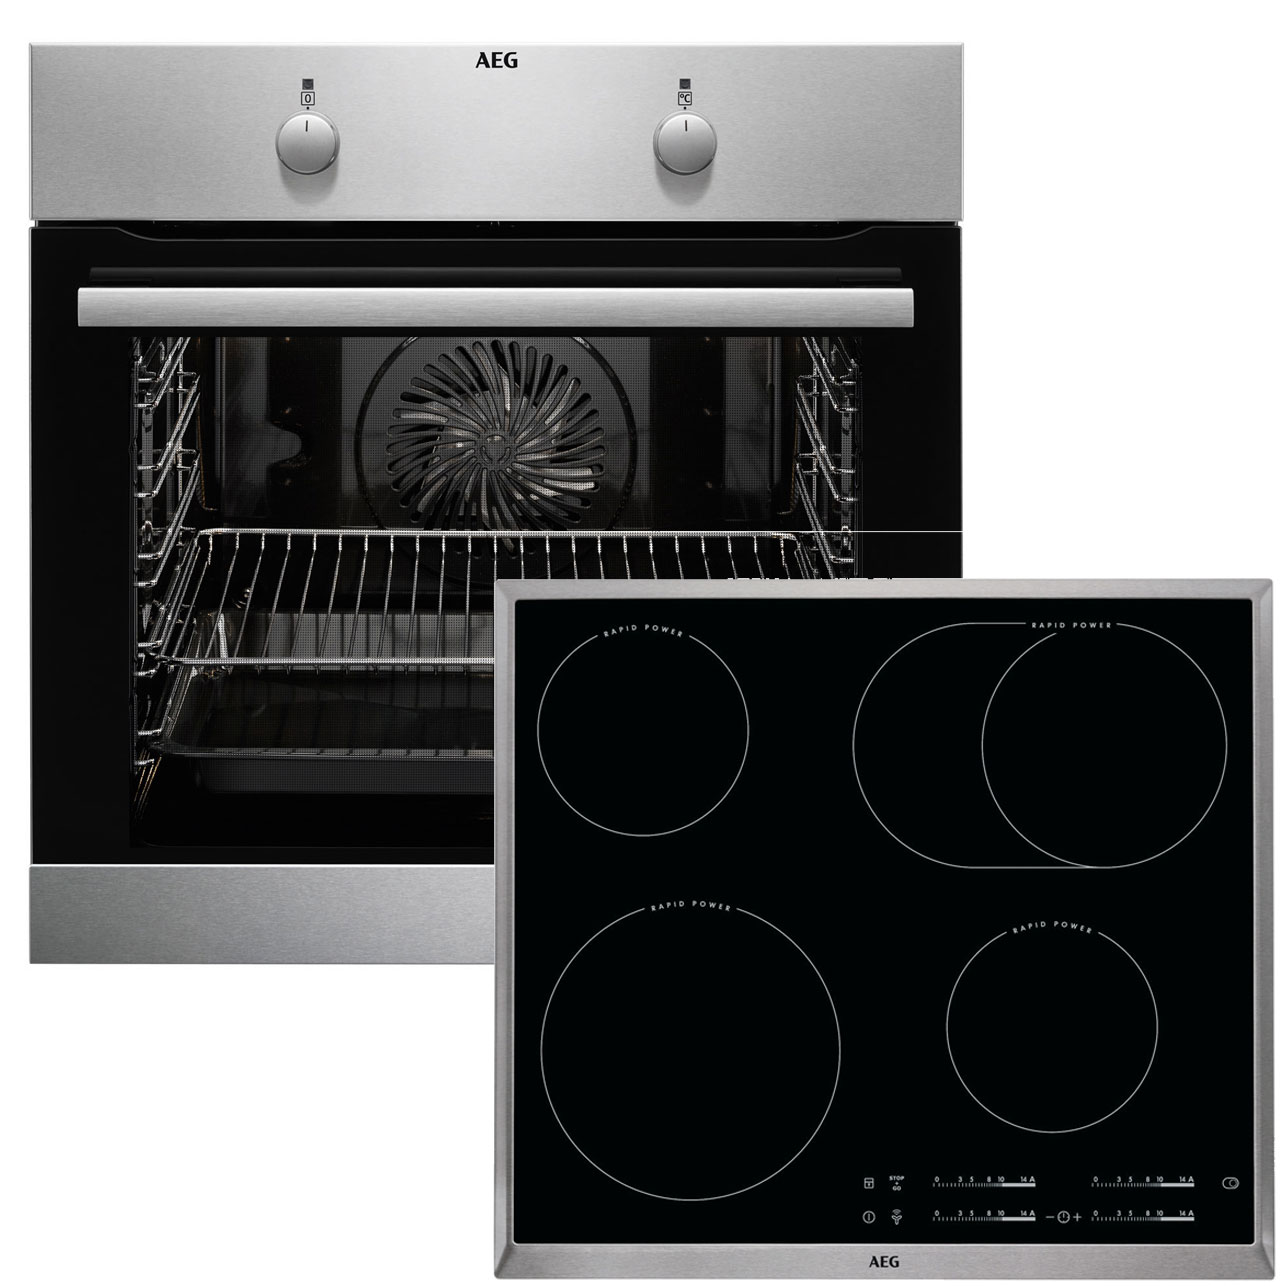 aeg beb232 backofen set beb230010m backofen hk654850x b autark ceran kochfel ebay. Black Bedroom Furniture Sets. Home Design Ideas